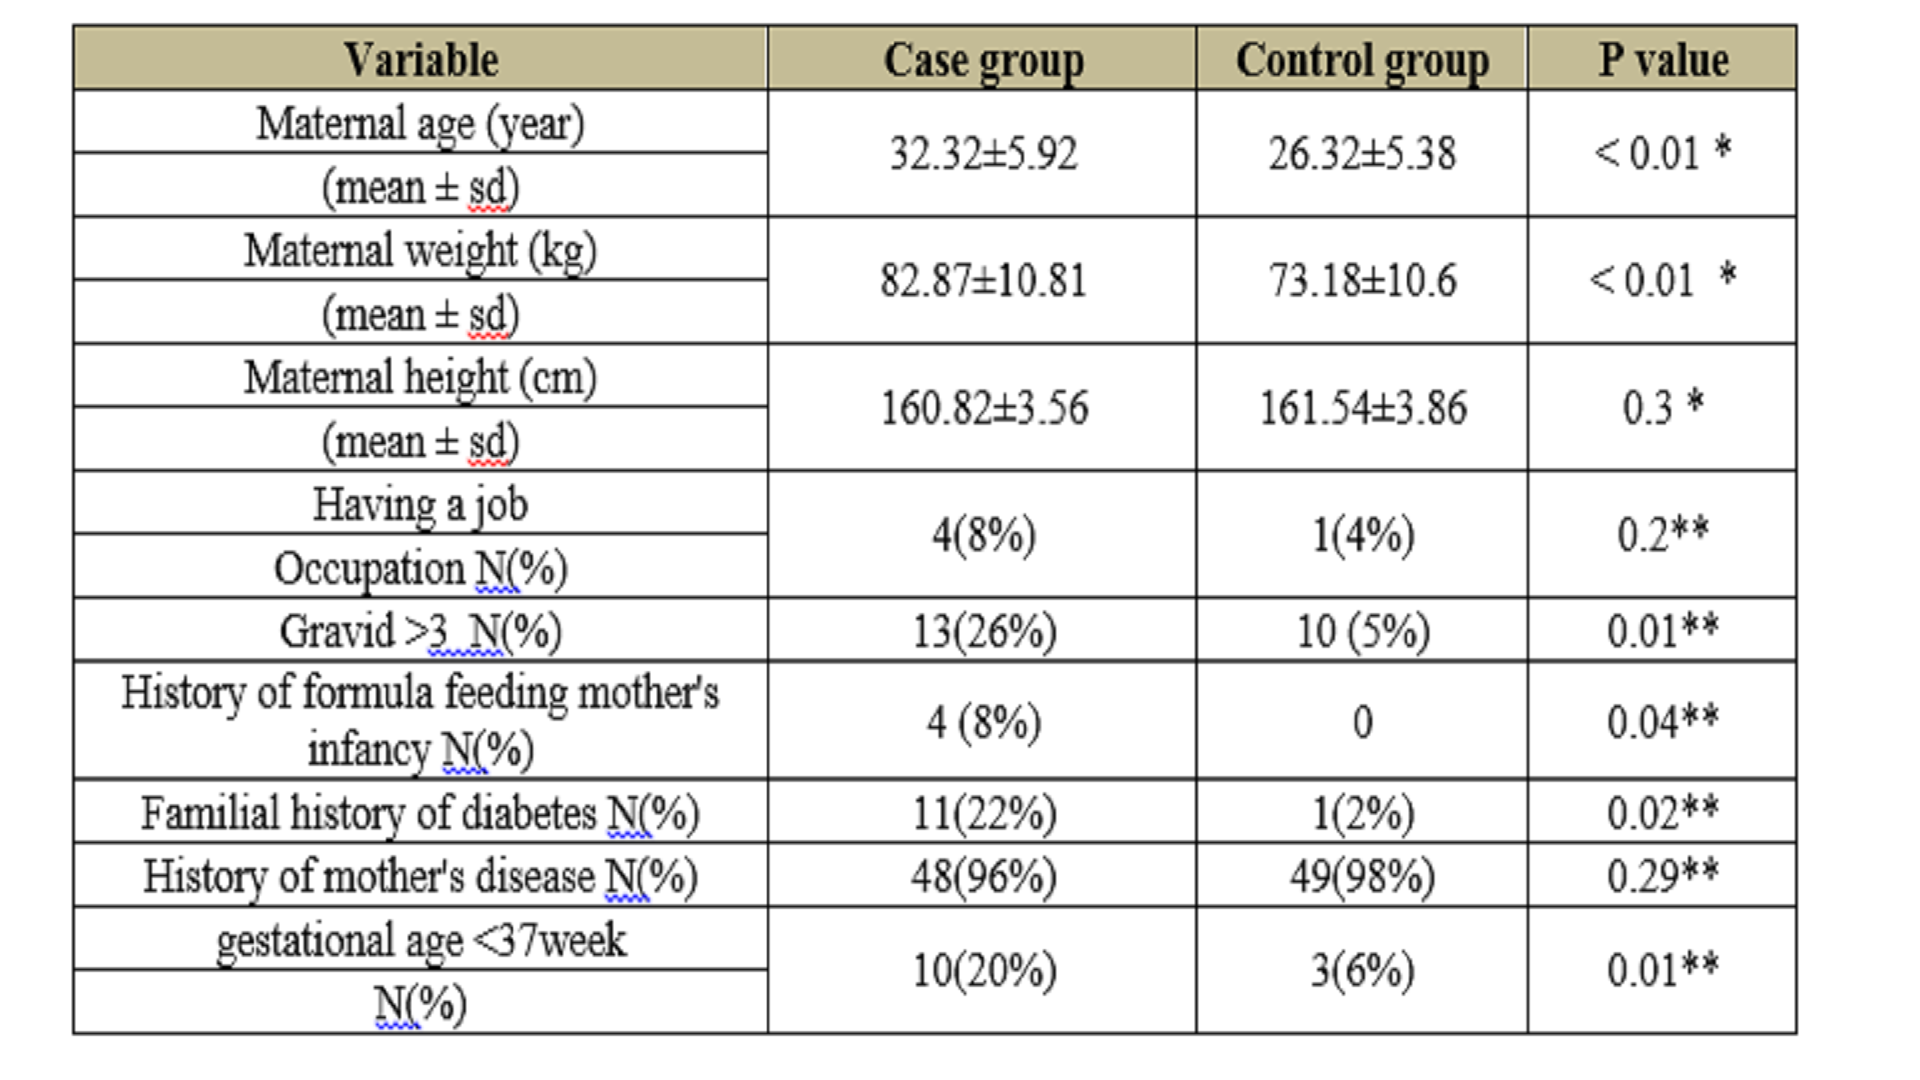 Comparison of Micronutrient Levels in Pregnant Mothers with Gestational Diabetes and Non-Diabetic